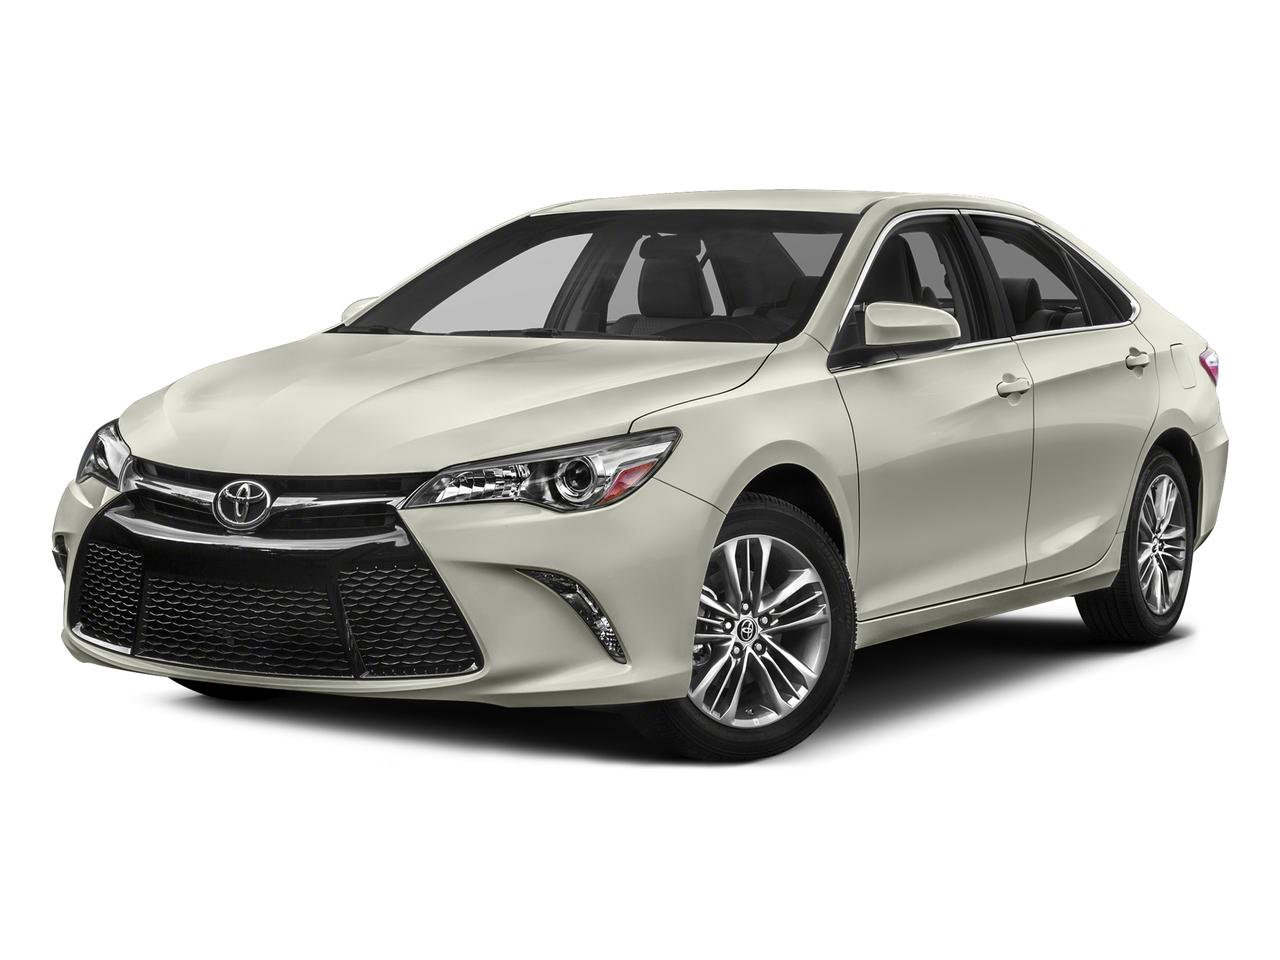 2017 Toyota Camry Vehicle Photo in Owensboro, KY 42302